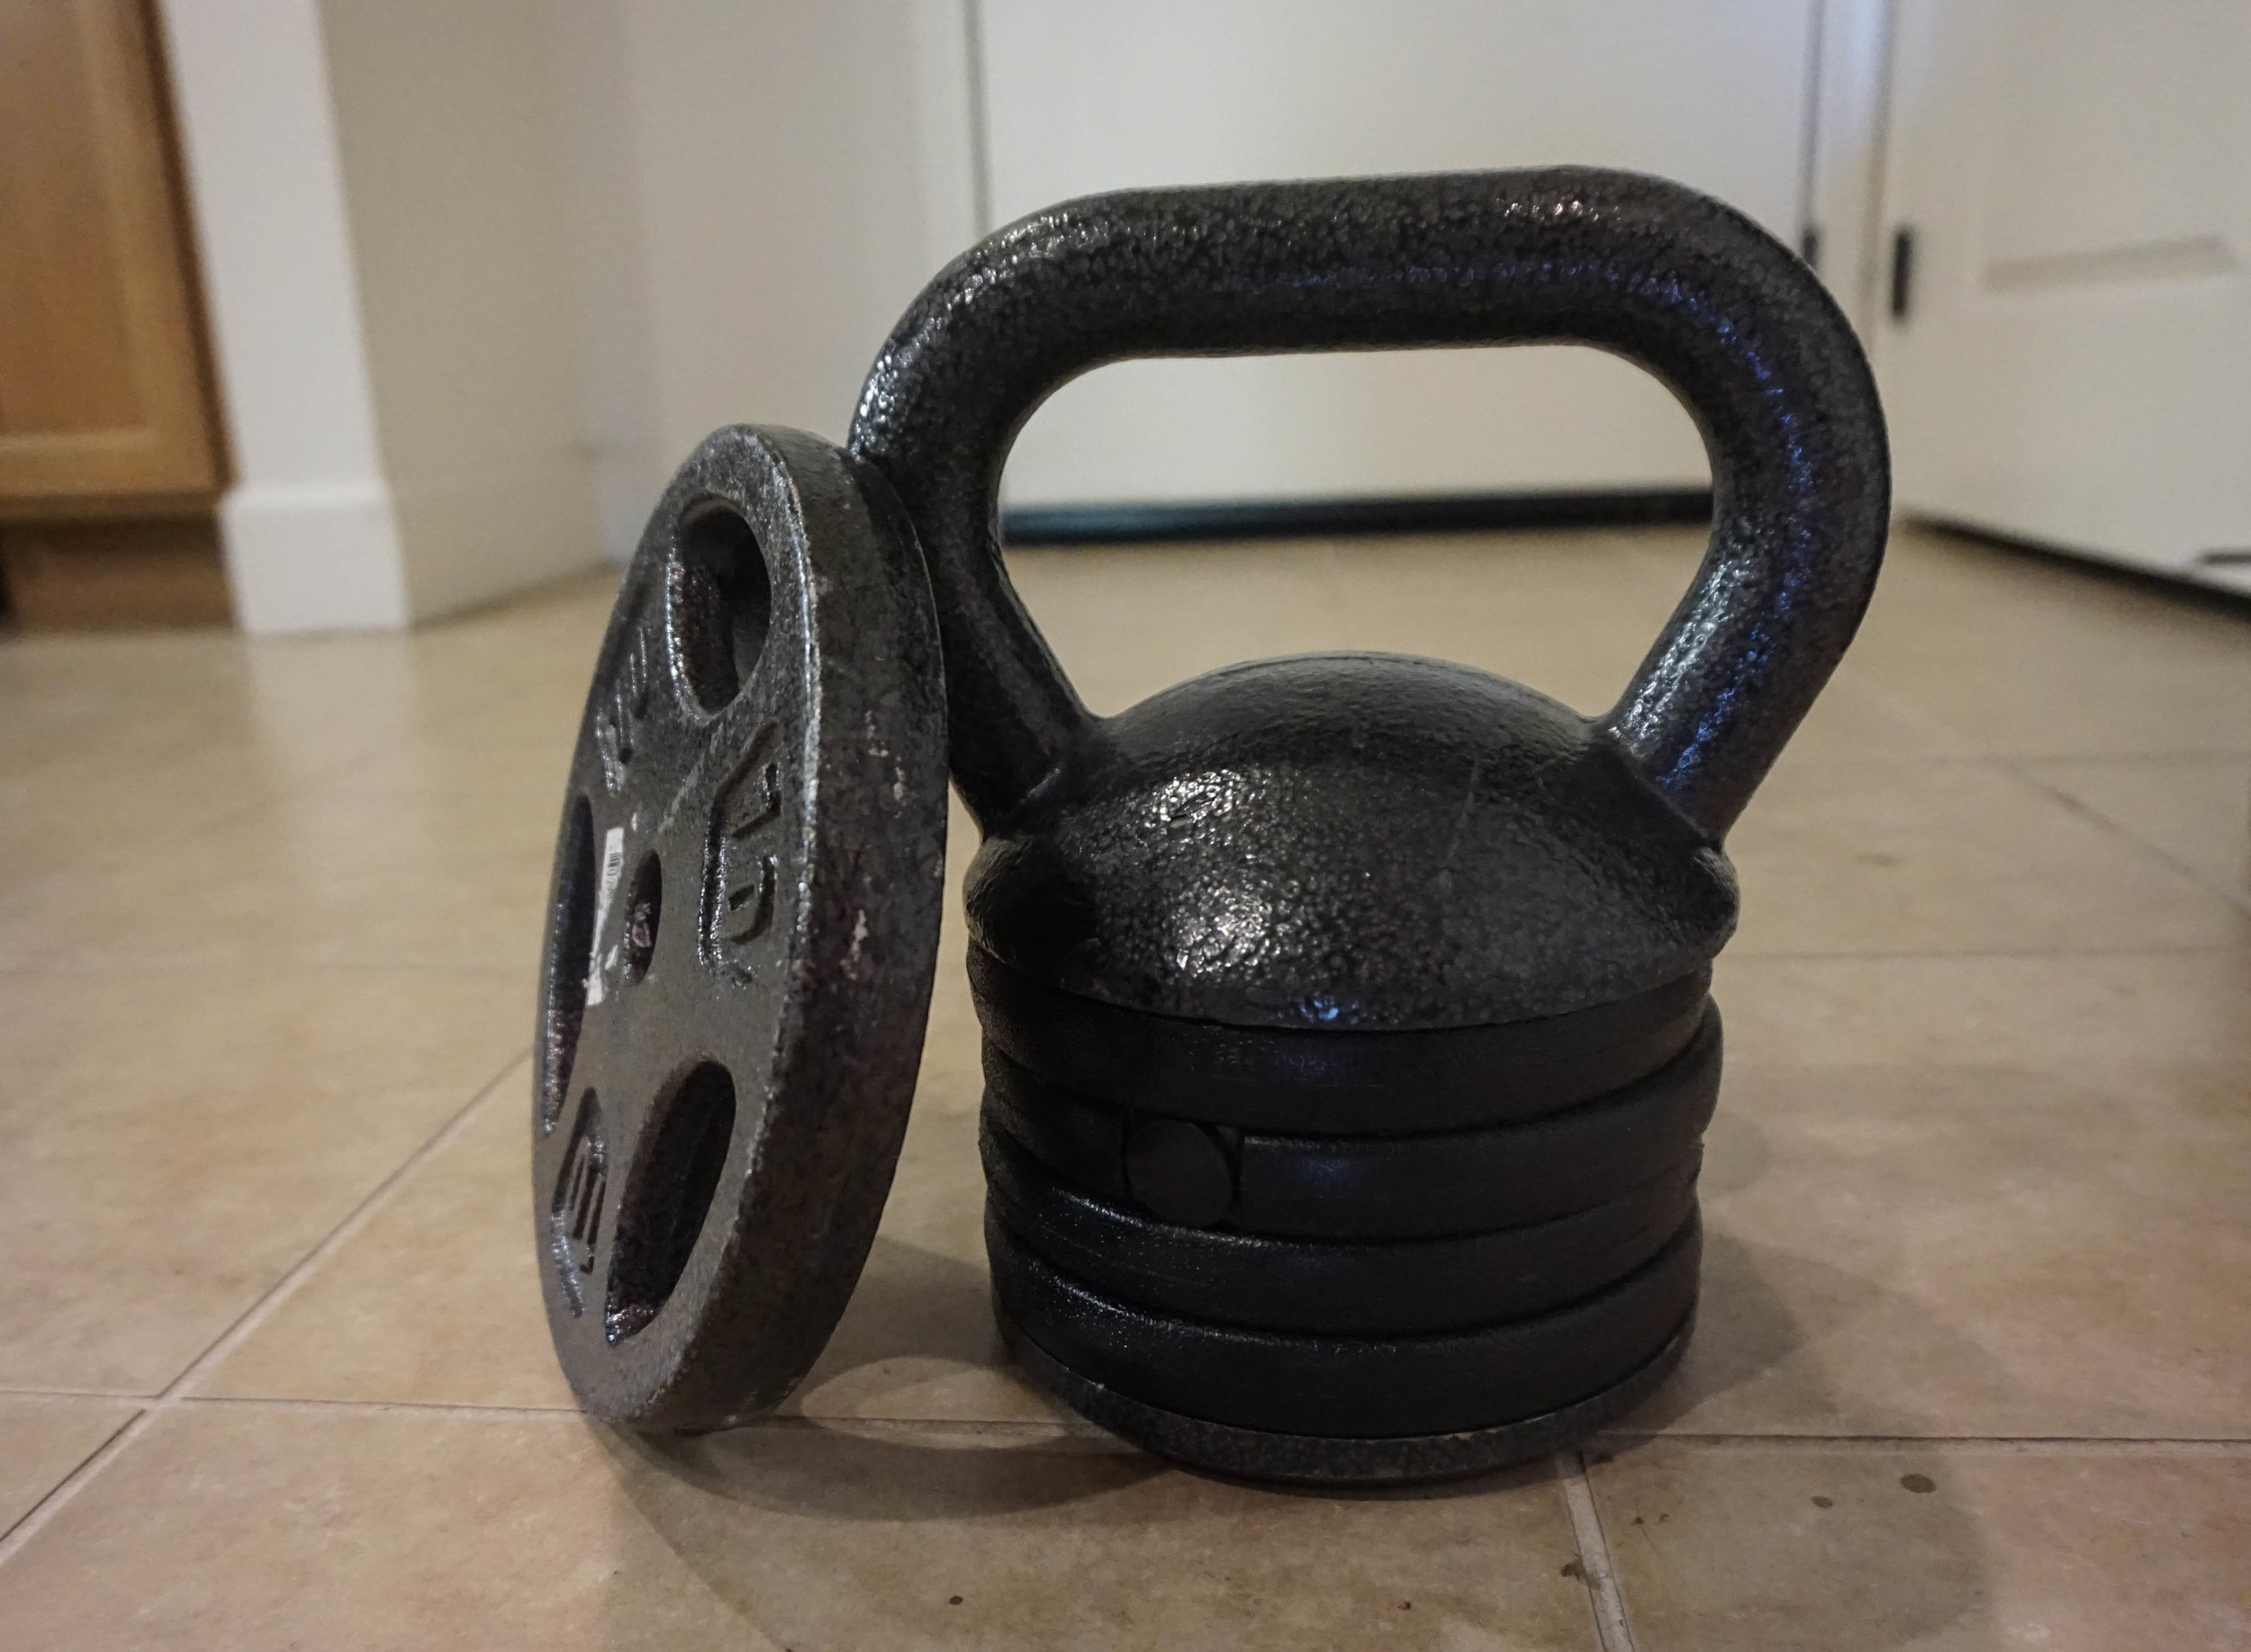 Kettlbell for in home workout